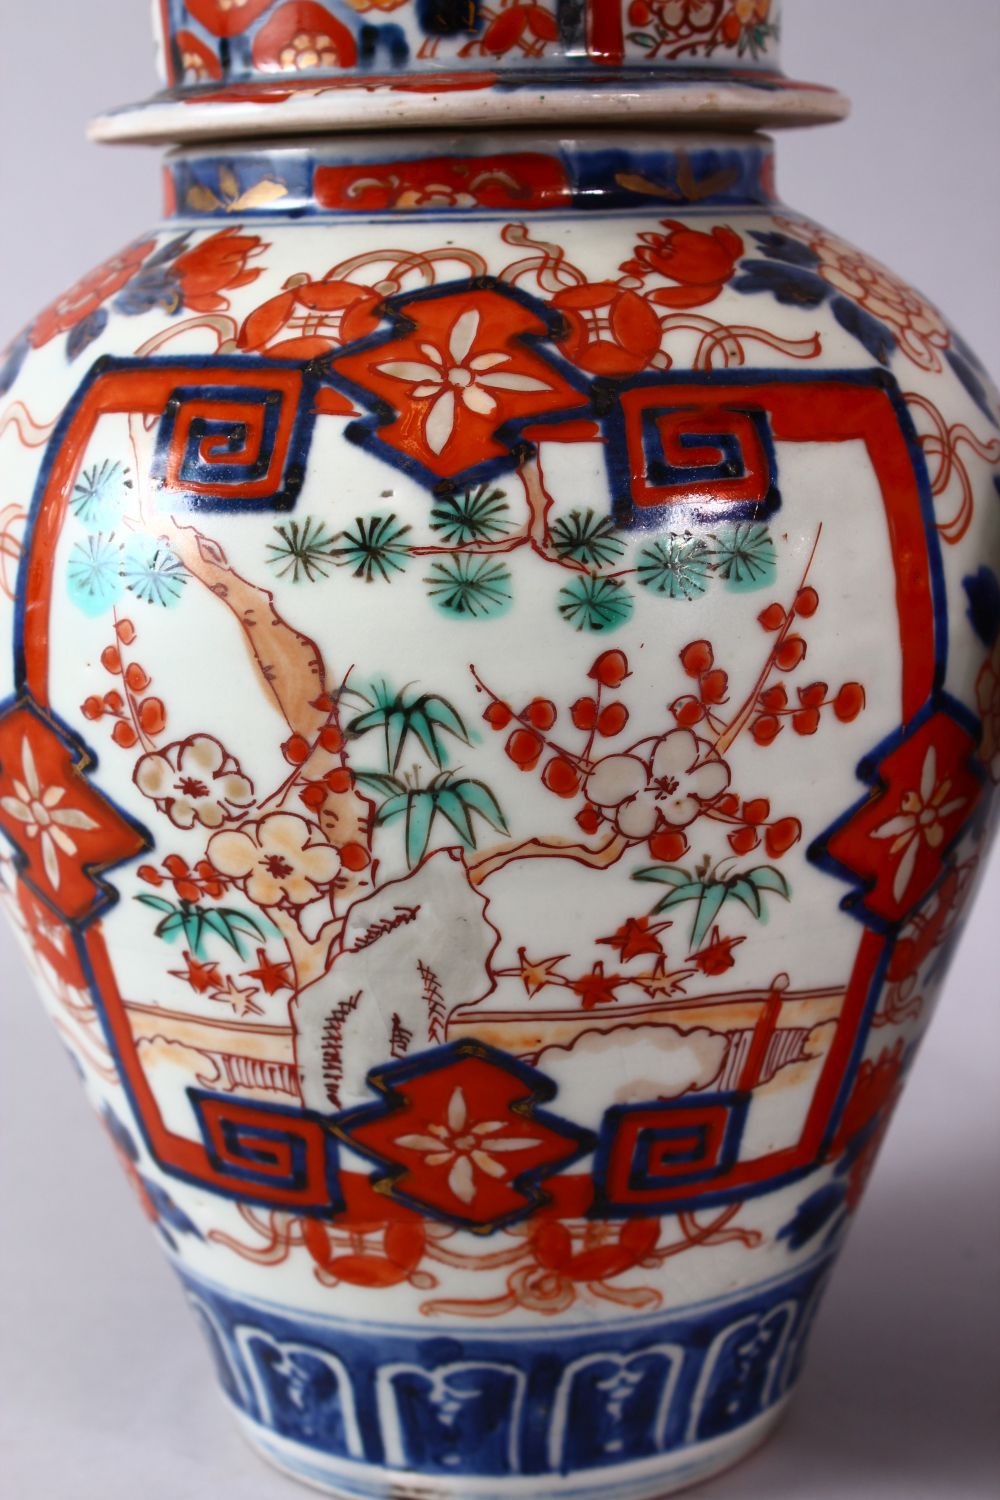 A PAIR OF MEIJI PERIOD IMARI VASES AND COVERS, with kylin finials, overall 30cm high. - Image 2 of 10